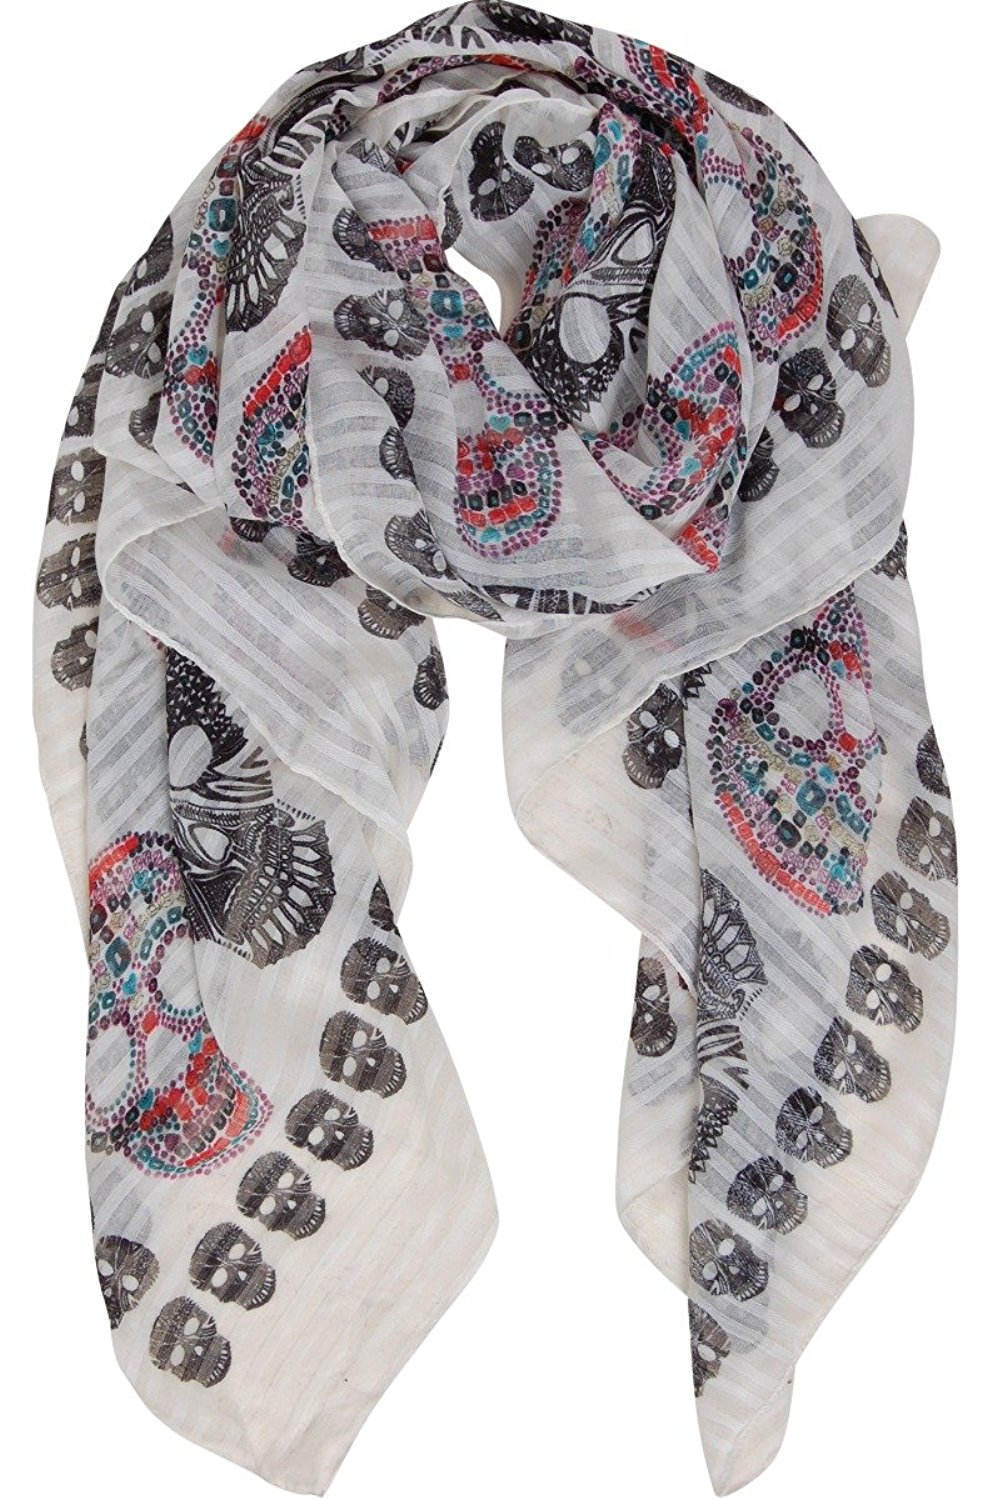 Lina /& Lily Day of the Dead Sugar Skull Print Large Scarf Shawl Lightweight